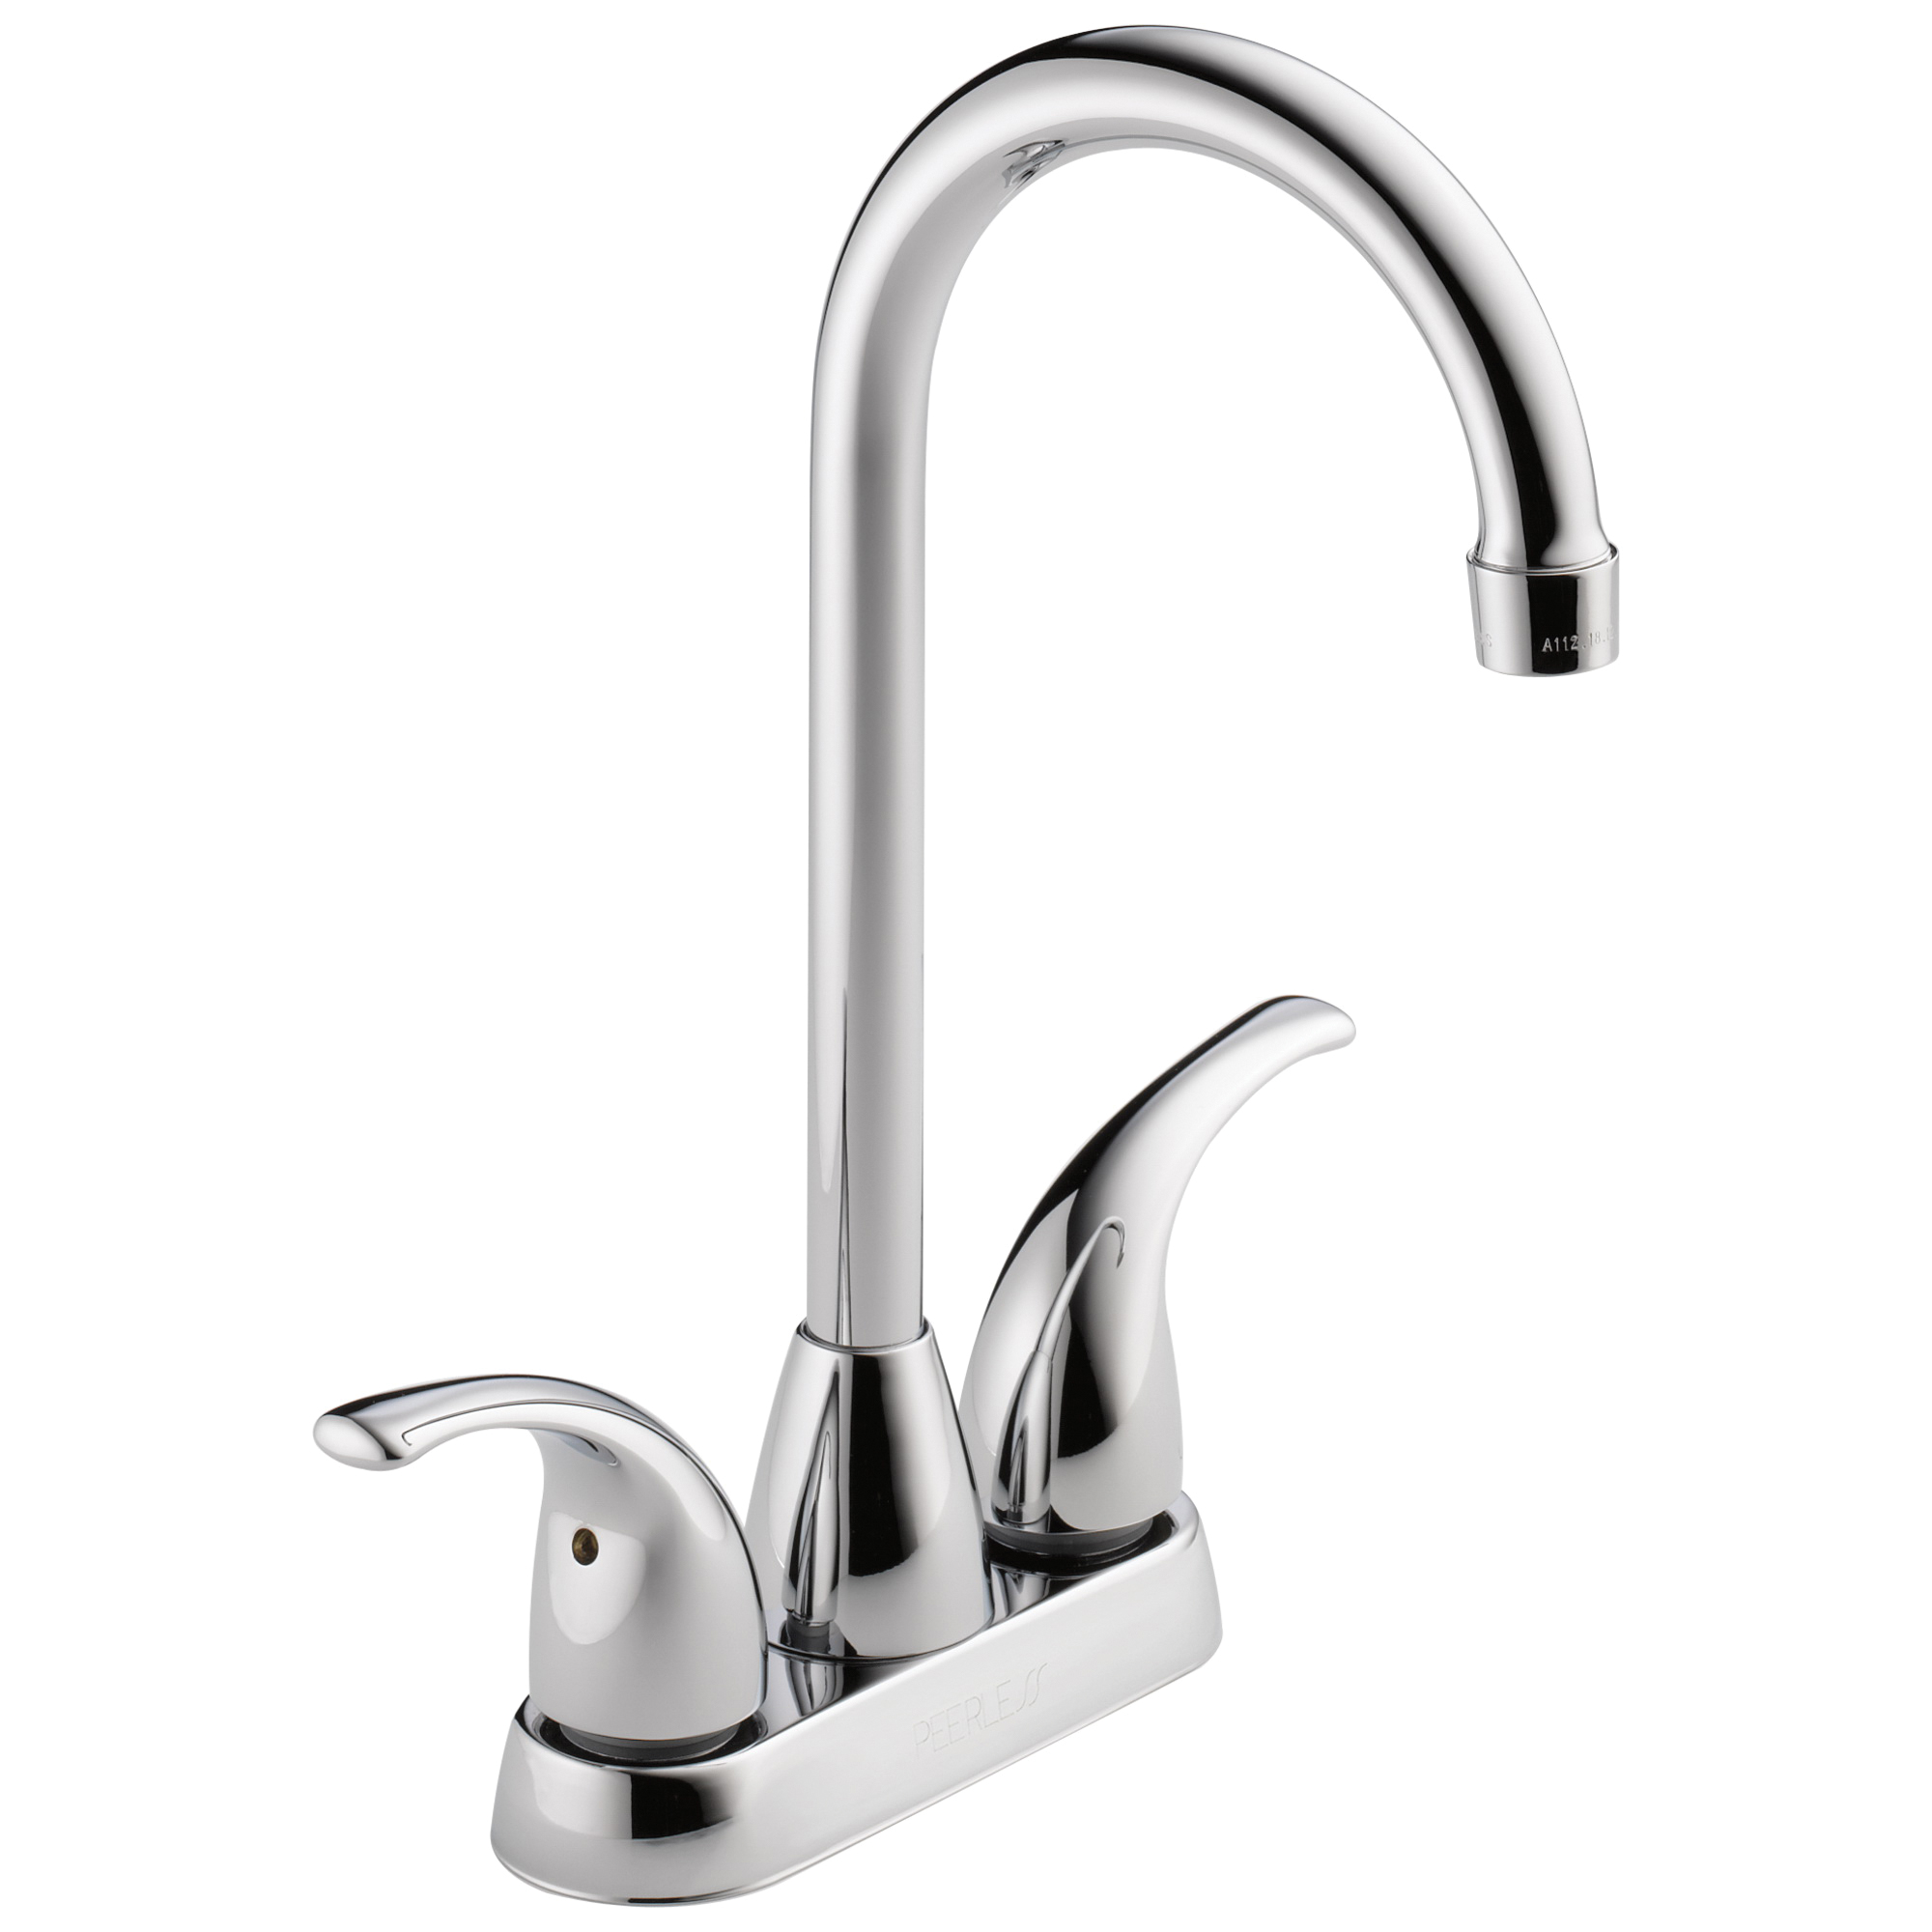 Peerless® P288LF Bar/Prep Faucet, Polished Chrome, 2 Handle, 1.8 gpm